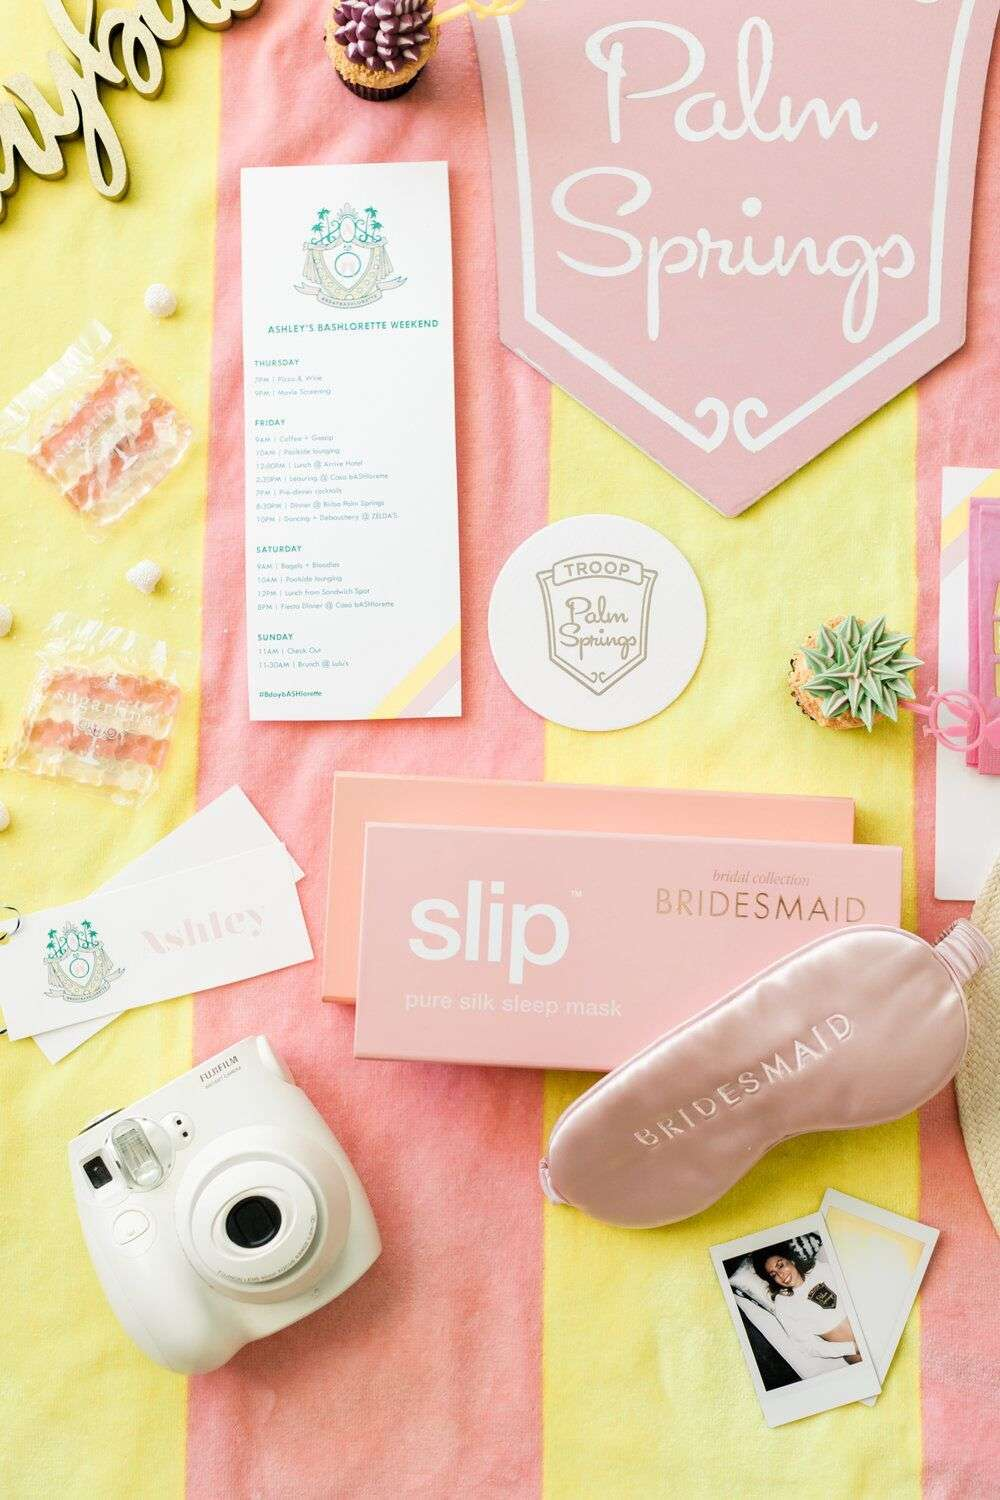 customized bachelorette party accessories and favors